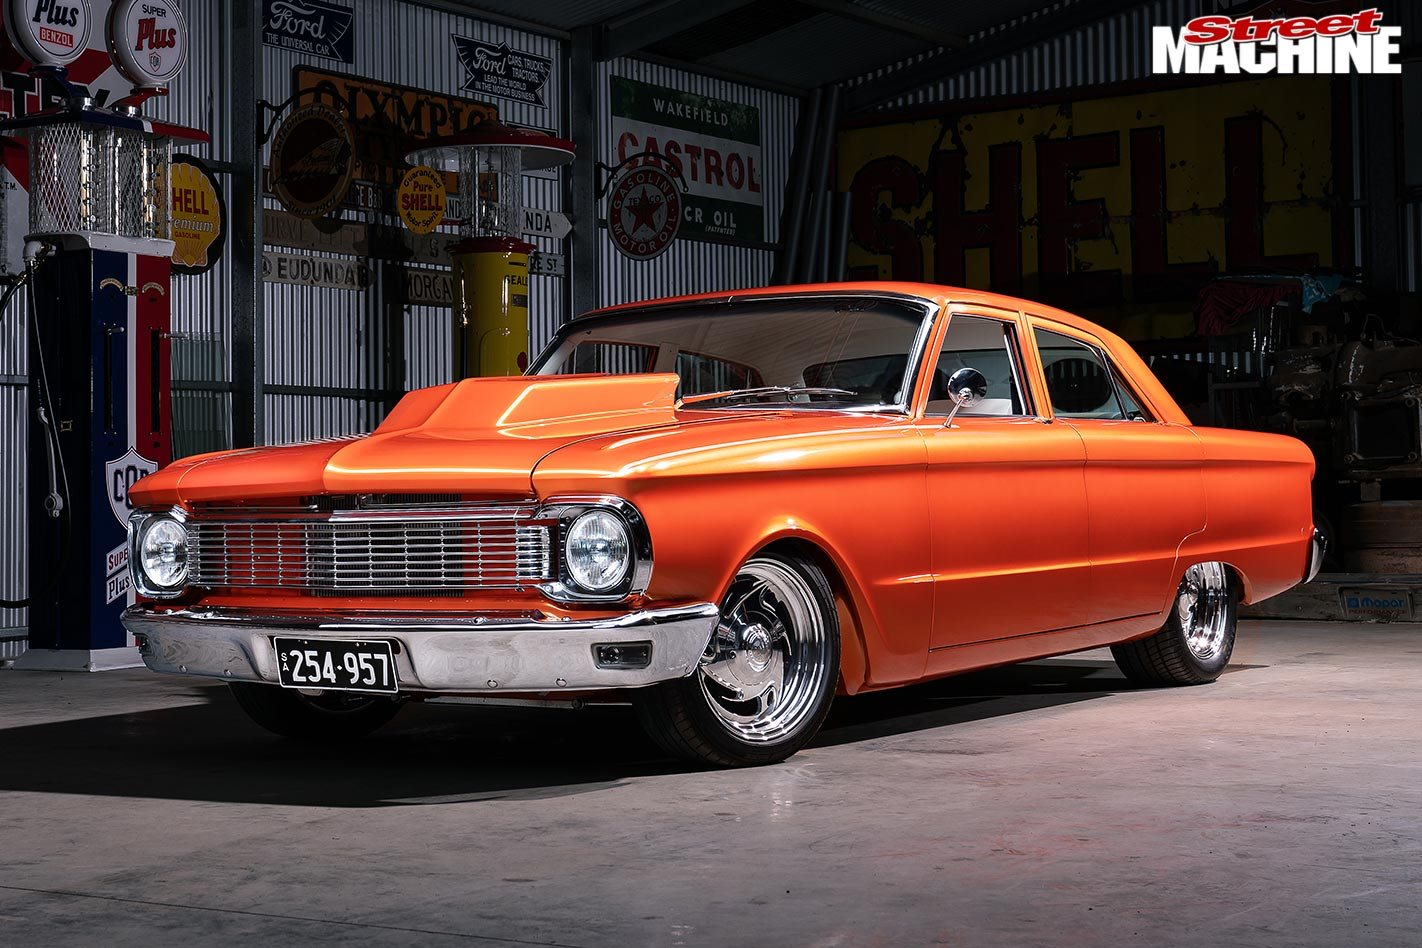 Chopped custom 1966 Ford XP Falcon sedan